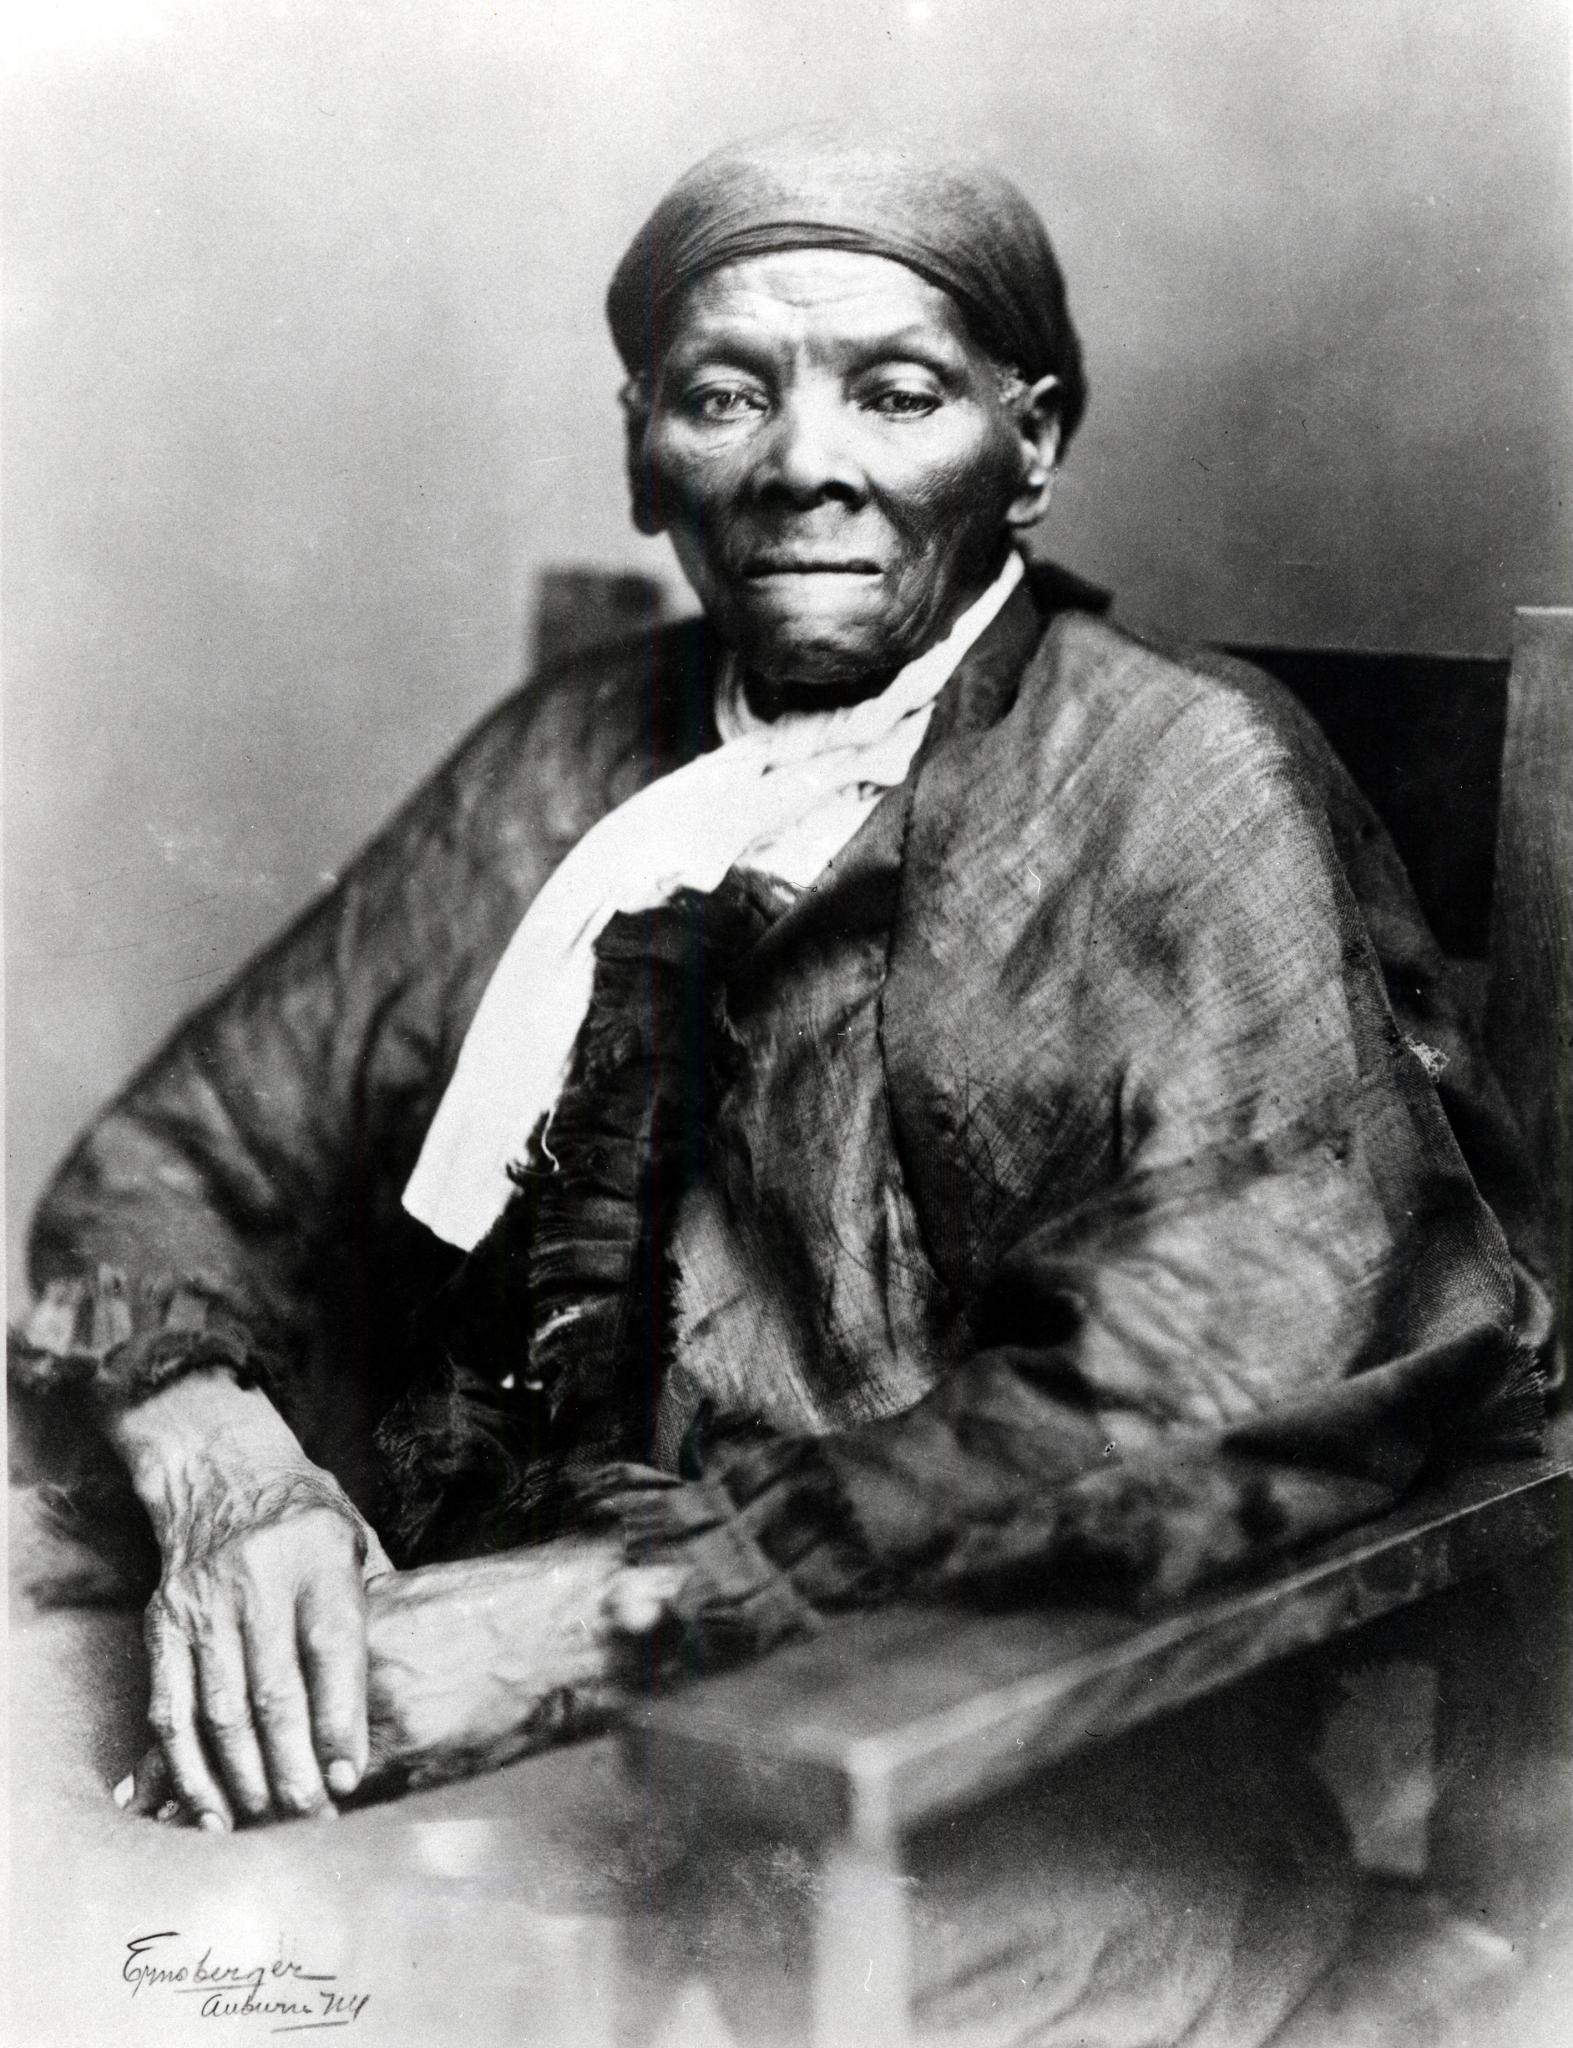 Announcement of Harriet Tubman as Face of $20 Dollar Bill Has Black Twitter Too Lit